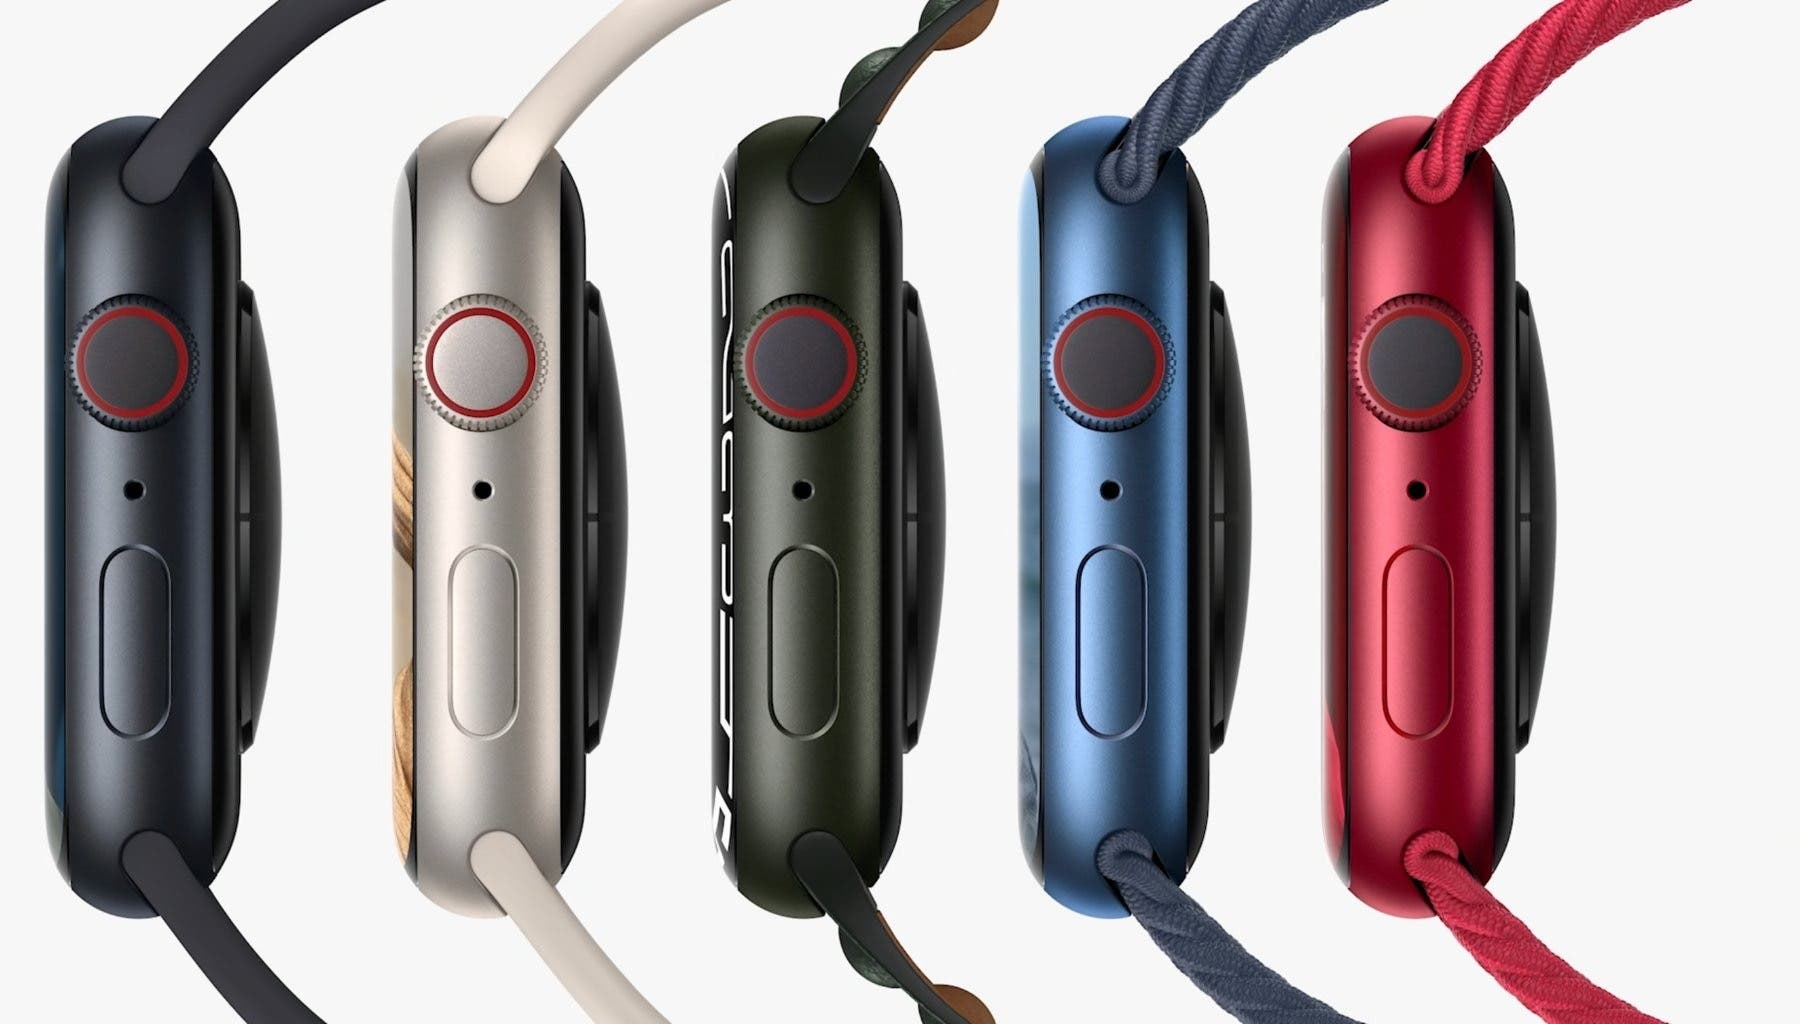 The launch of the Apple conference to announce its new series of phones